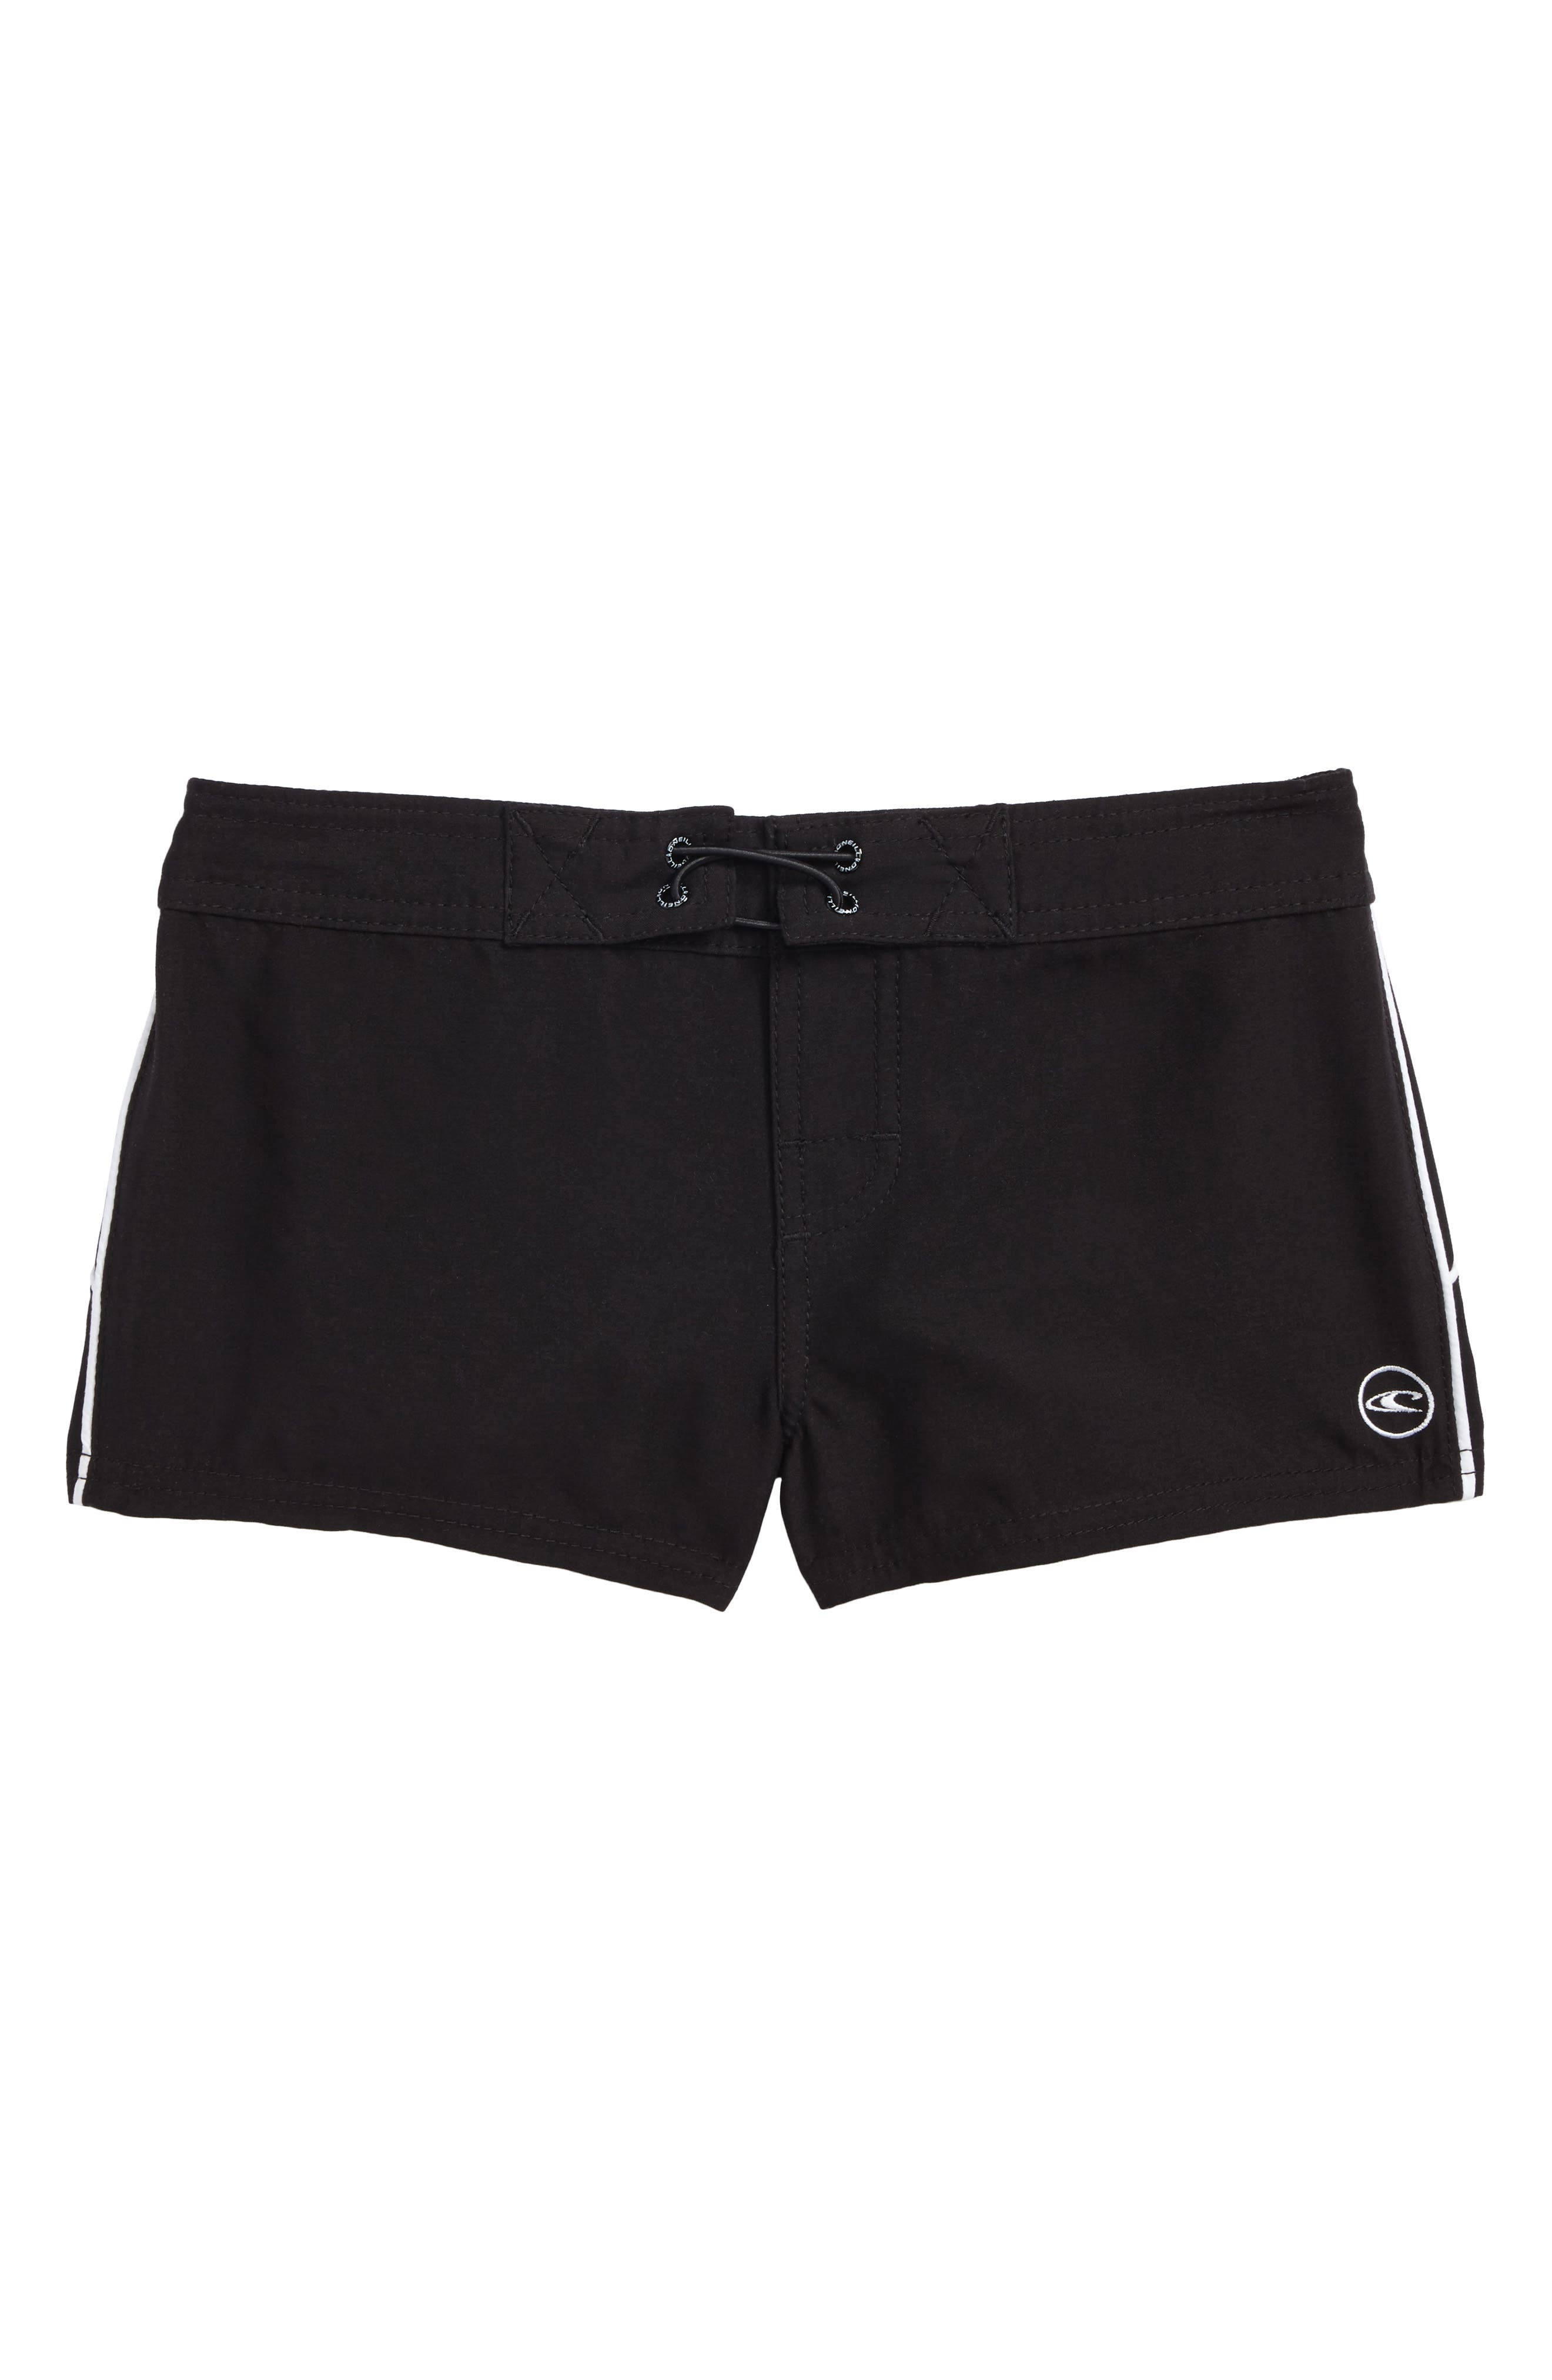 Salt Water Board Shorts,                         Main,                         color,